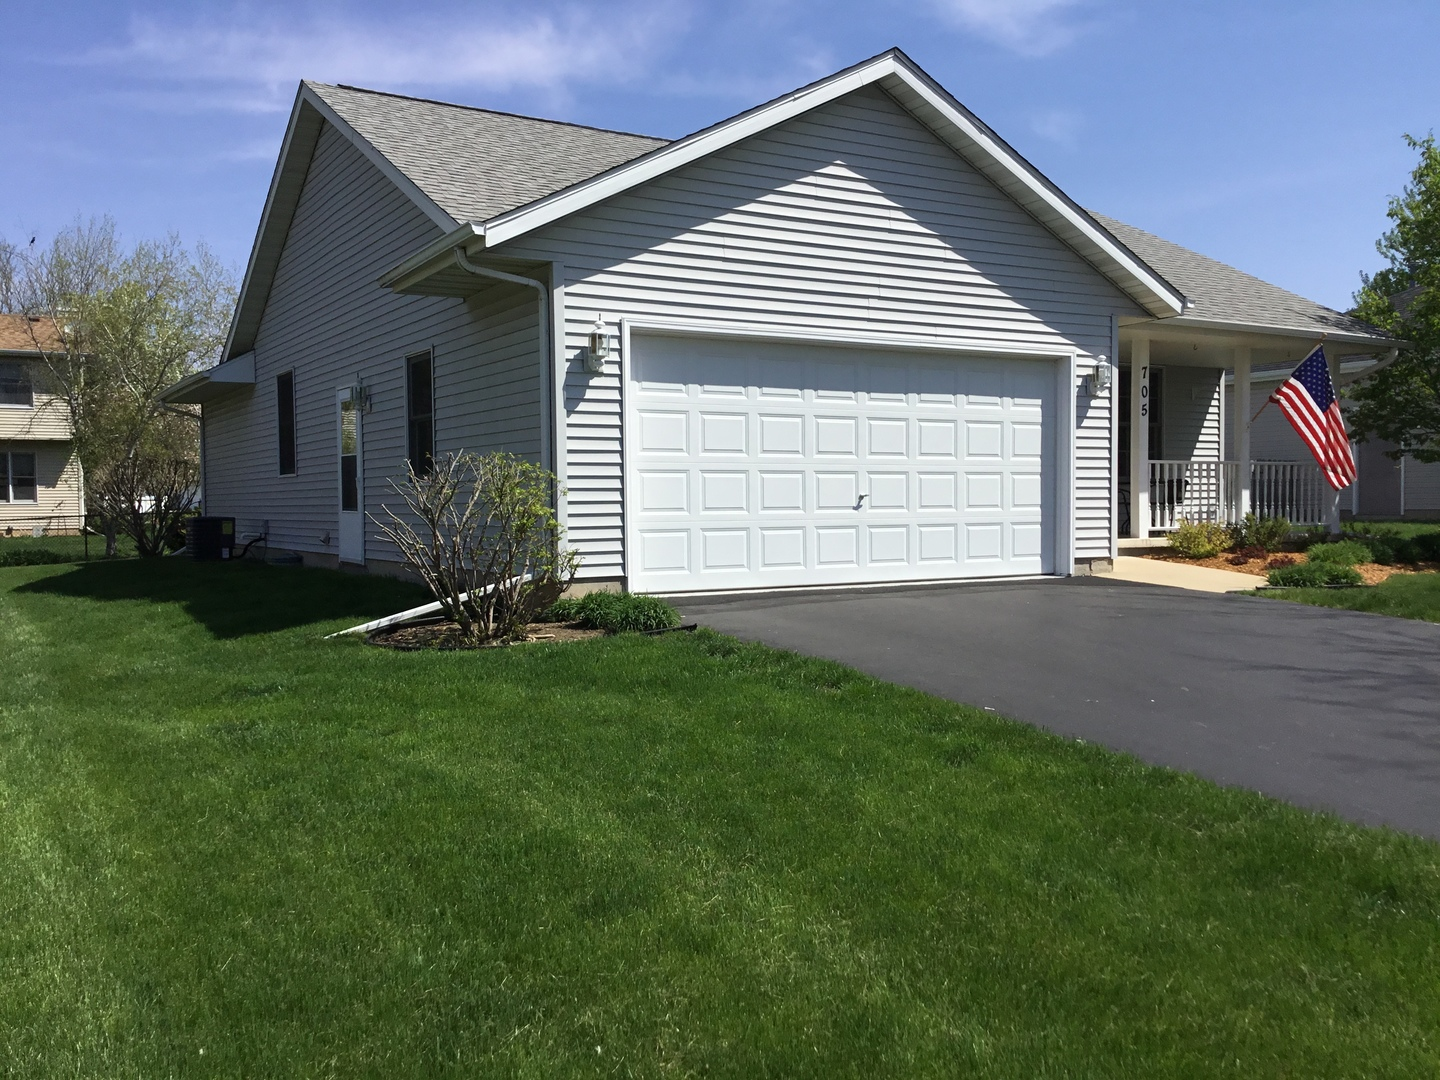 single women in cedar lane W6534 cedar lane, greenville, wi - contact david radtke about this single family home listing in greenville hortonville schools in outagamie county trust coldwell banker the real estate group for the most complete listings in greenville.